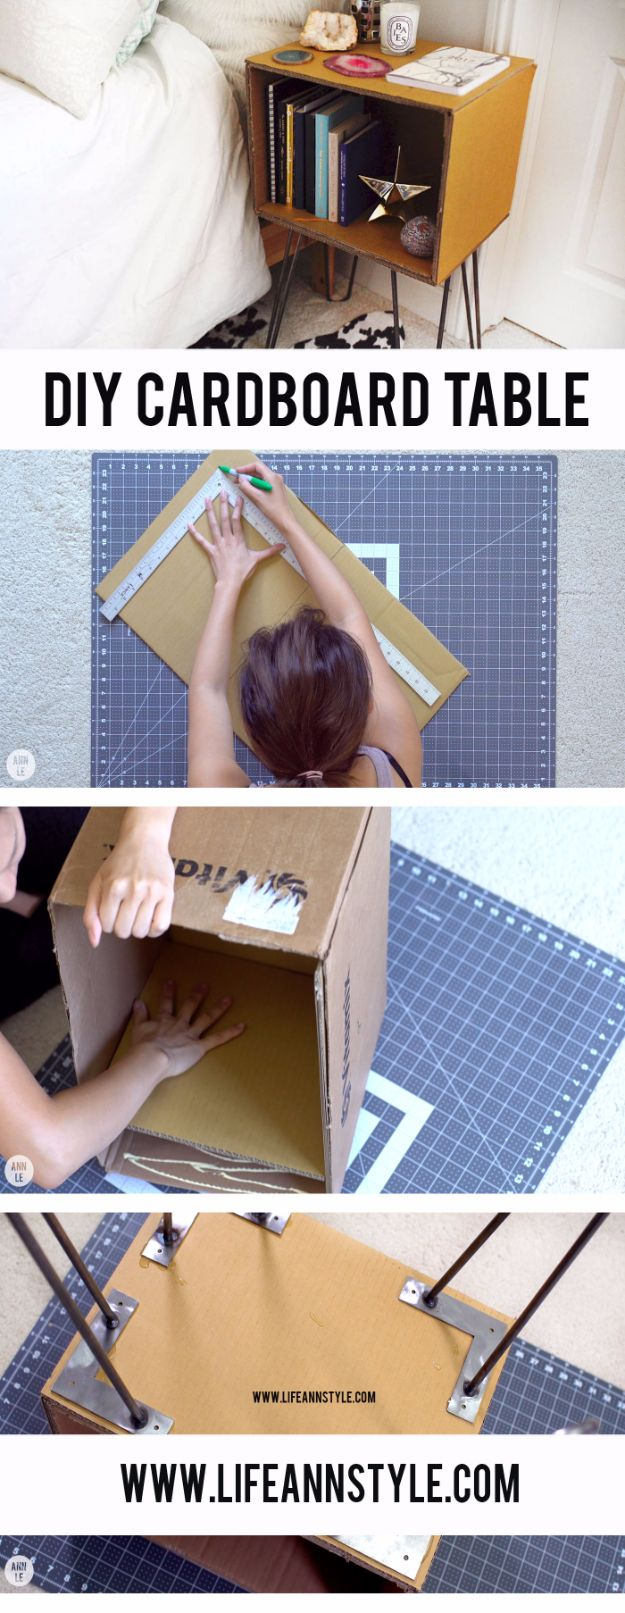 DIY Ideas With Cardboard - DIY Cardboard Table - How To Make Room Decor Crafts for Kids - Easy and Crafty Storage Ideas For Room - Toilet Paper Roll Projects Tutorials - Fun Furniture Ideas with Cardboard - Cheap, Quick and Easy Wall Decorations #diyideas #cardboardcrafts #crafts